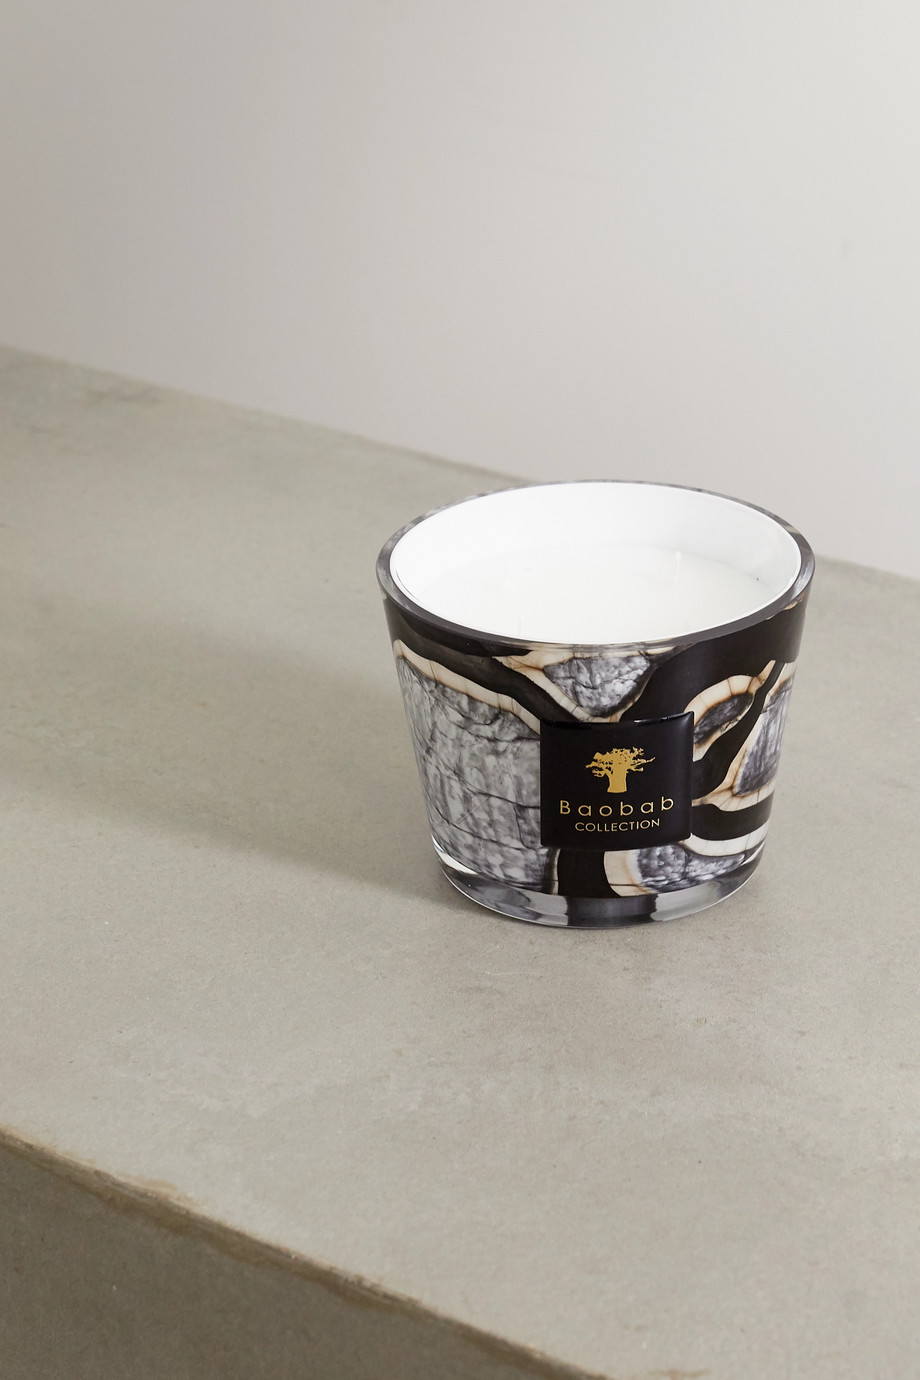 Baobab Collection Stones Marble Max 10 scented candle, 1.3kg